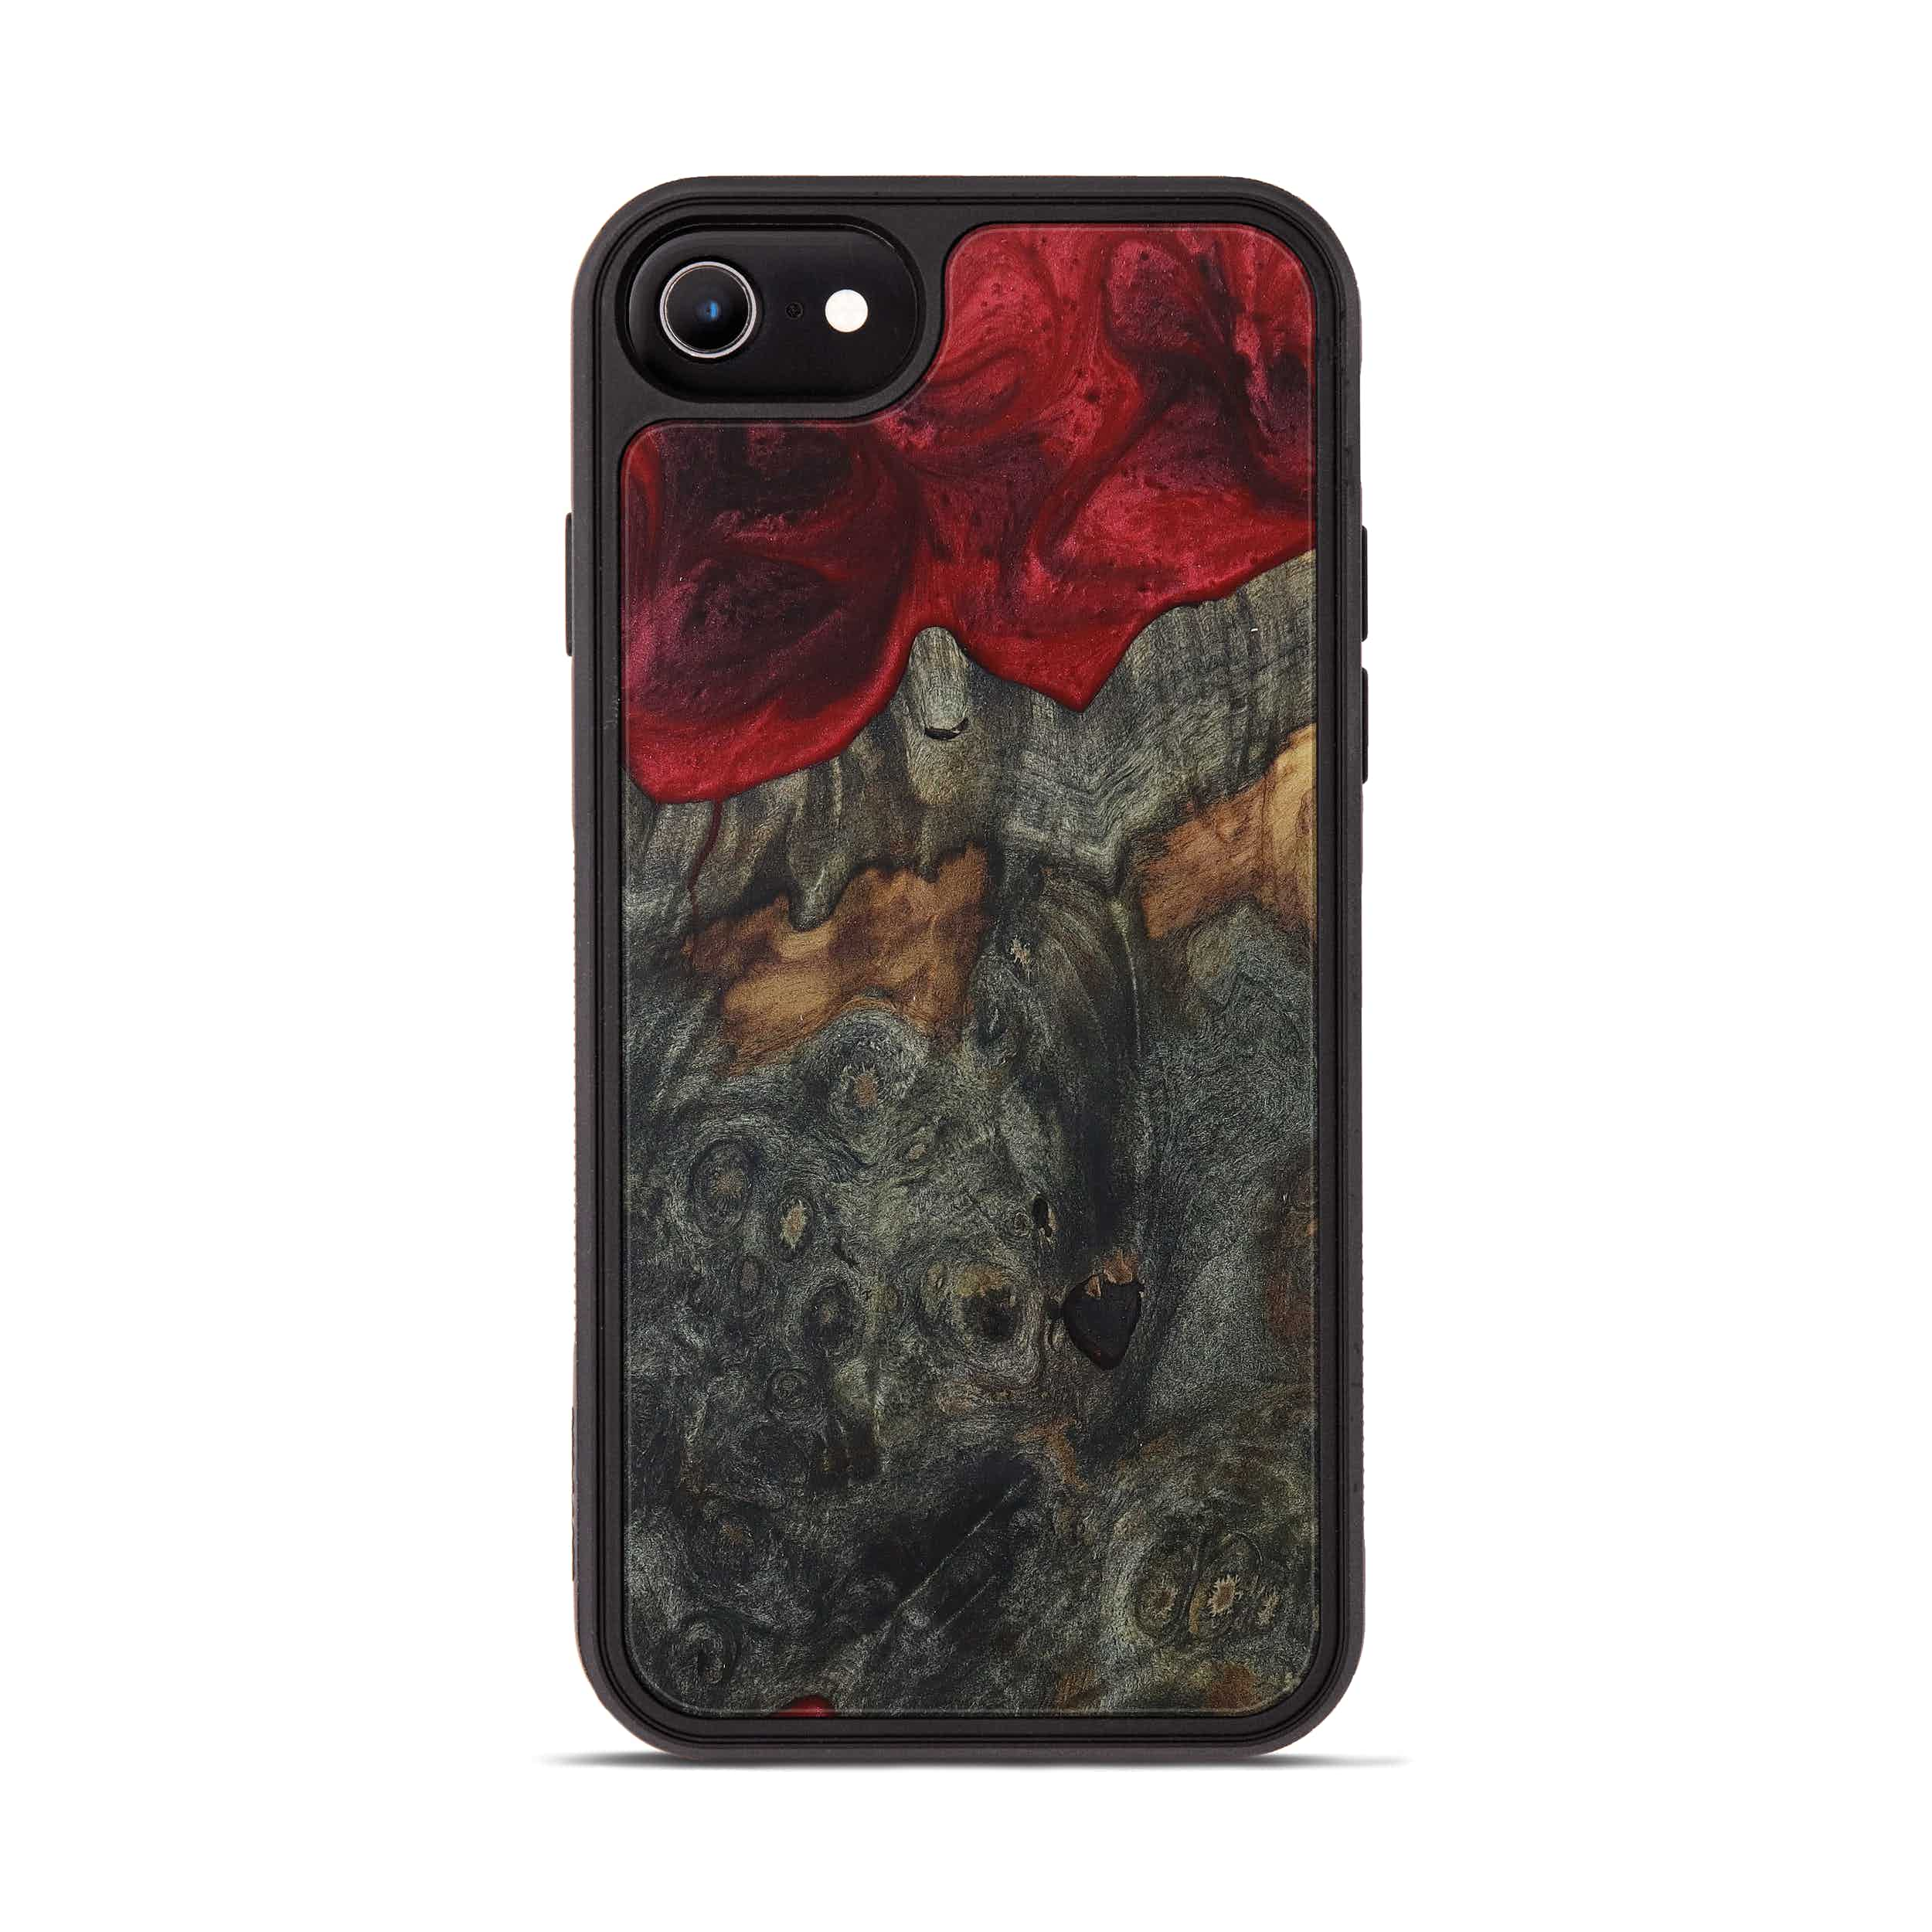 iPhone 6s Wood+Resin Phone Case - Blanche (Dark Red, 395935)